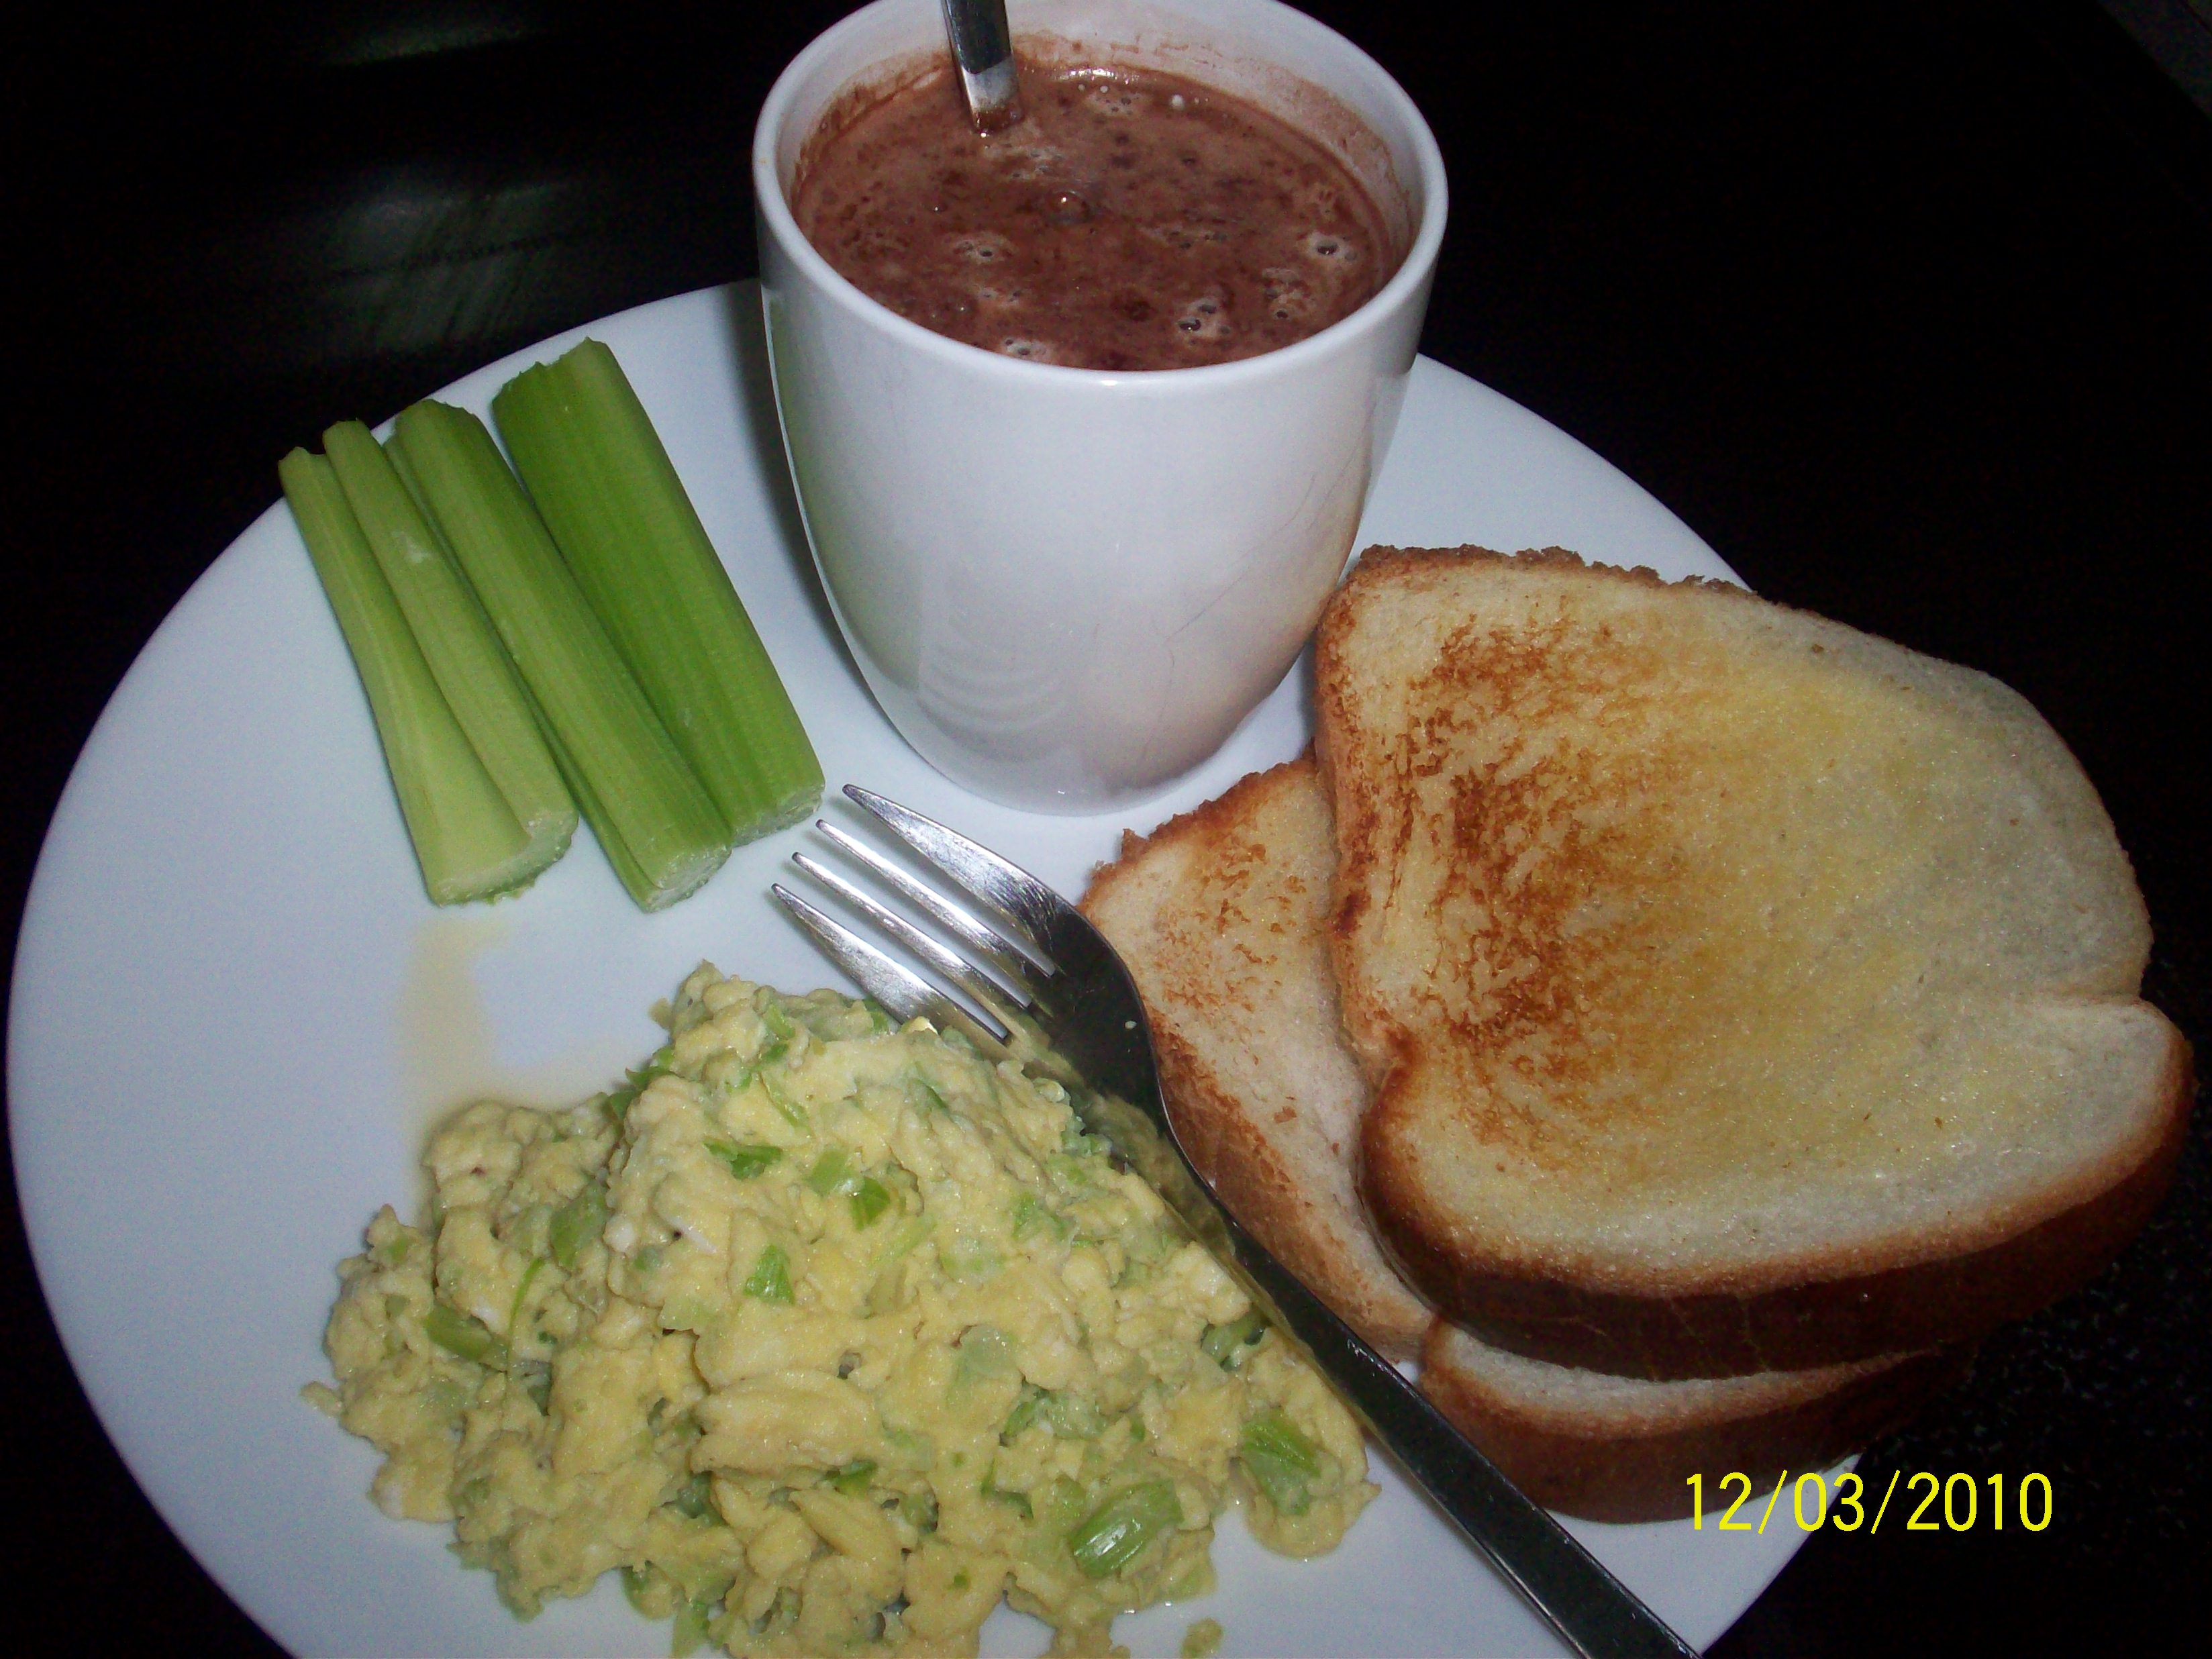 https://foodloader.net/cutie_2010-03-12_toast_with_scrambled_eggs_and_hot_chocolate_with_m.jpg